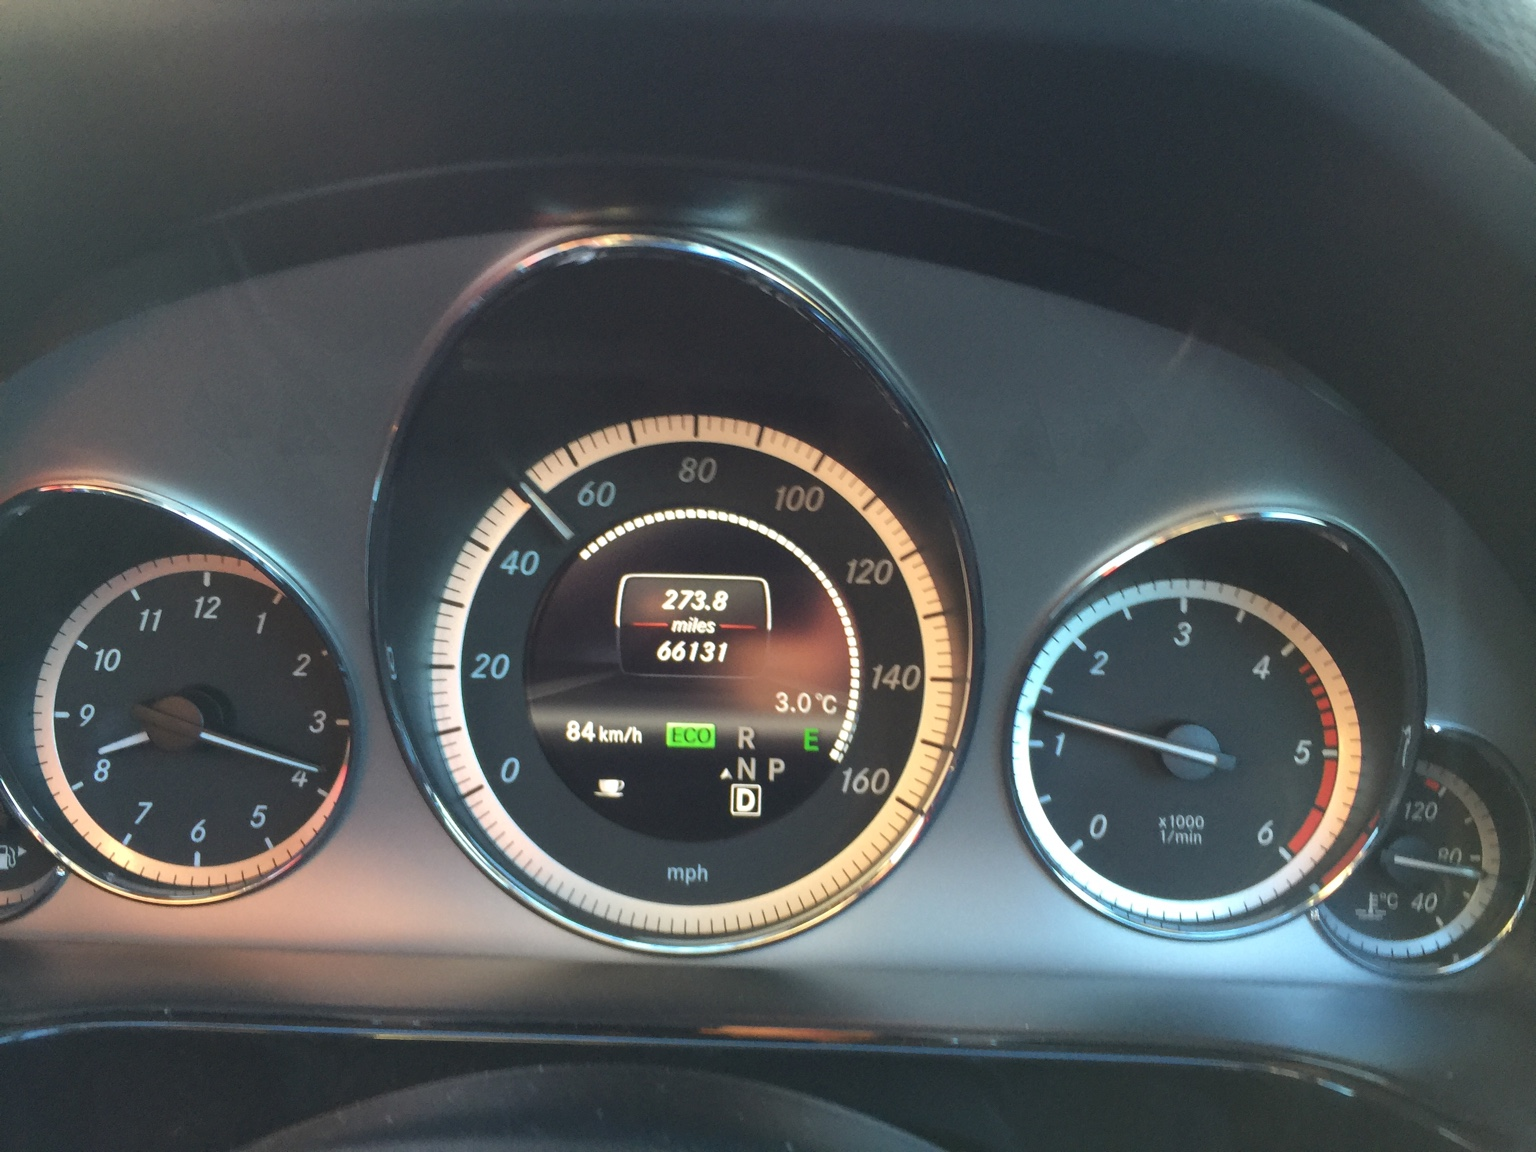 W204 ECO mode | Mercedes-Benz Owners' Forums